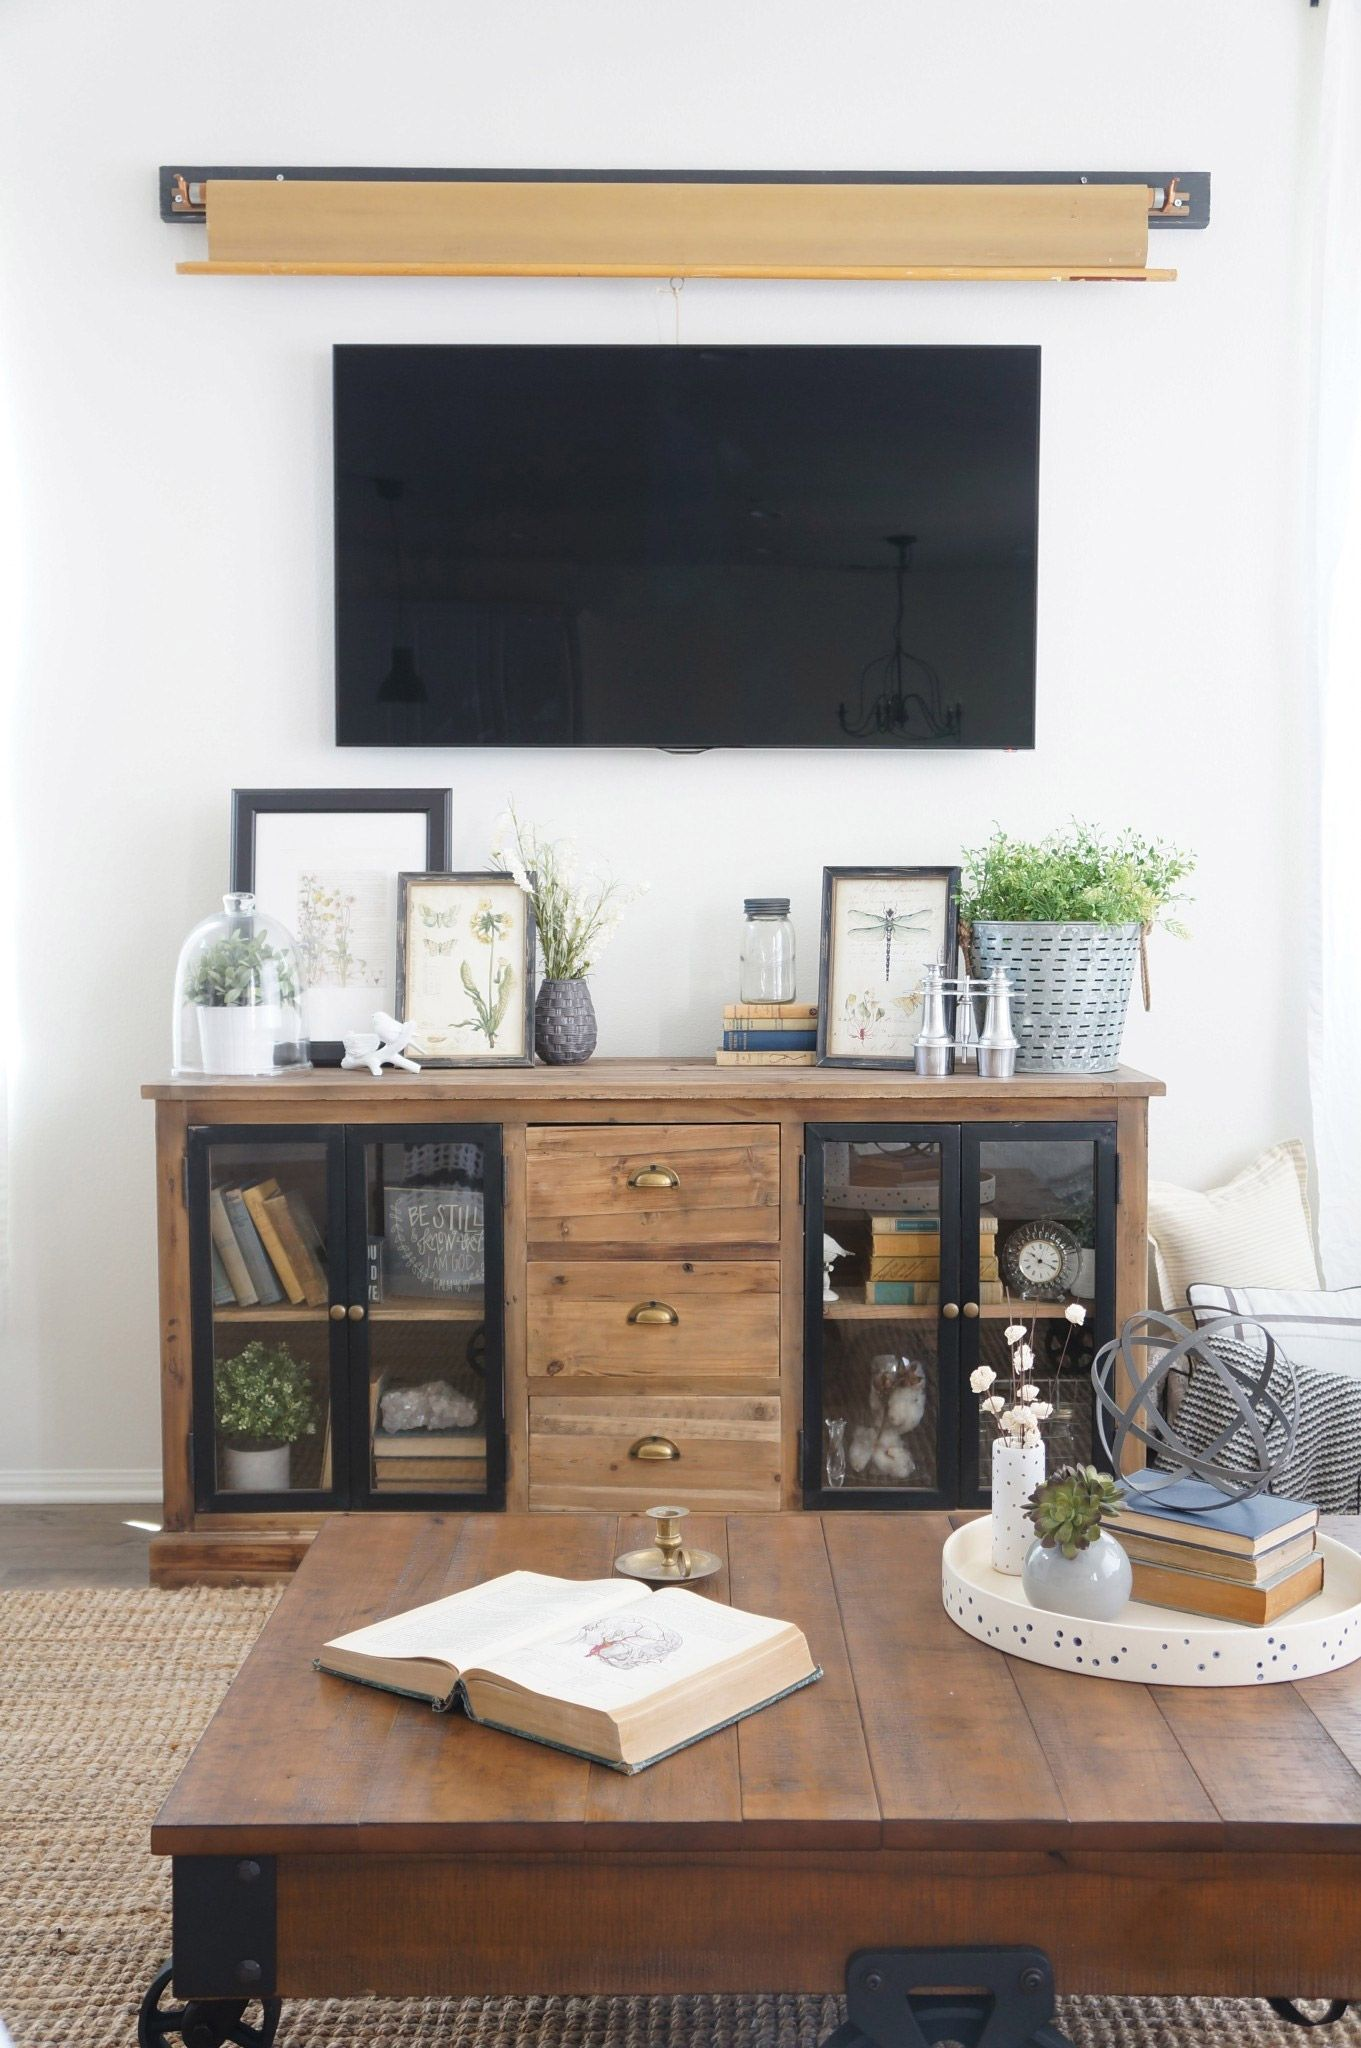 8 Clever And Stylish Ways To Disguise Your Tv Living Room Tv Home Decor Hidden Tv